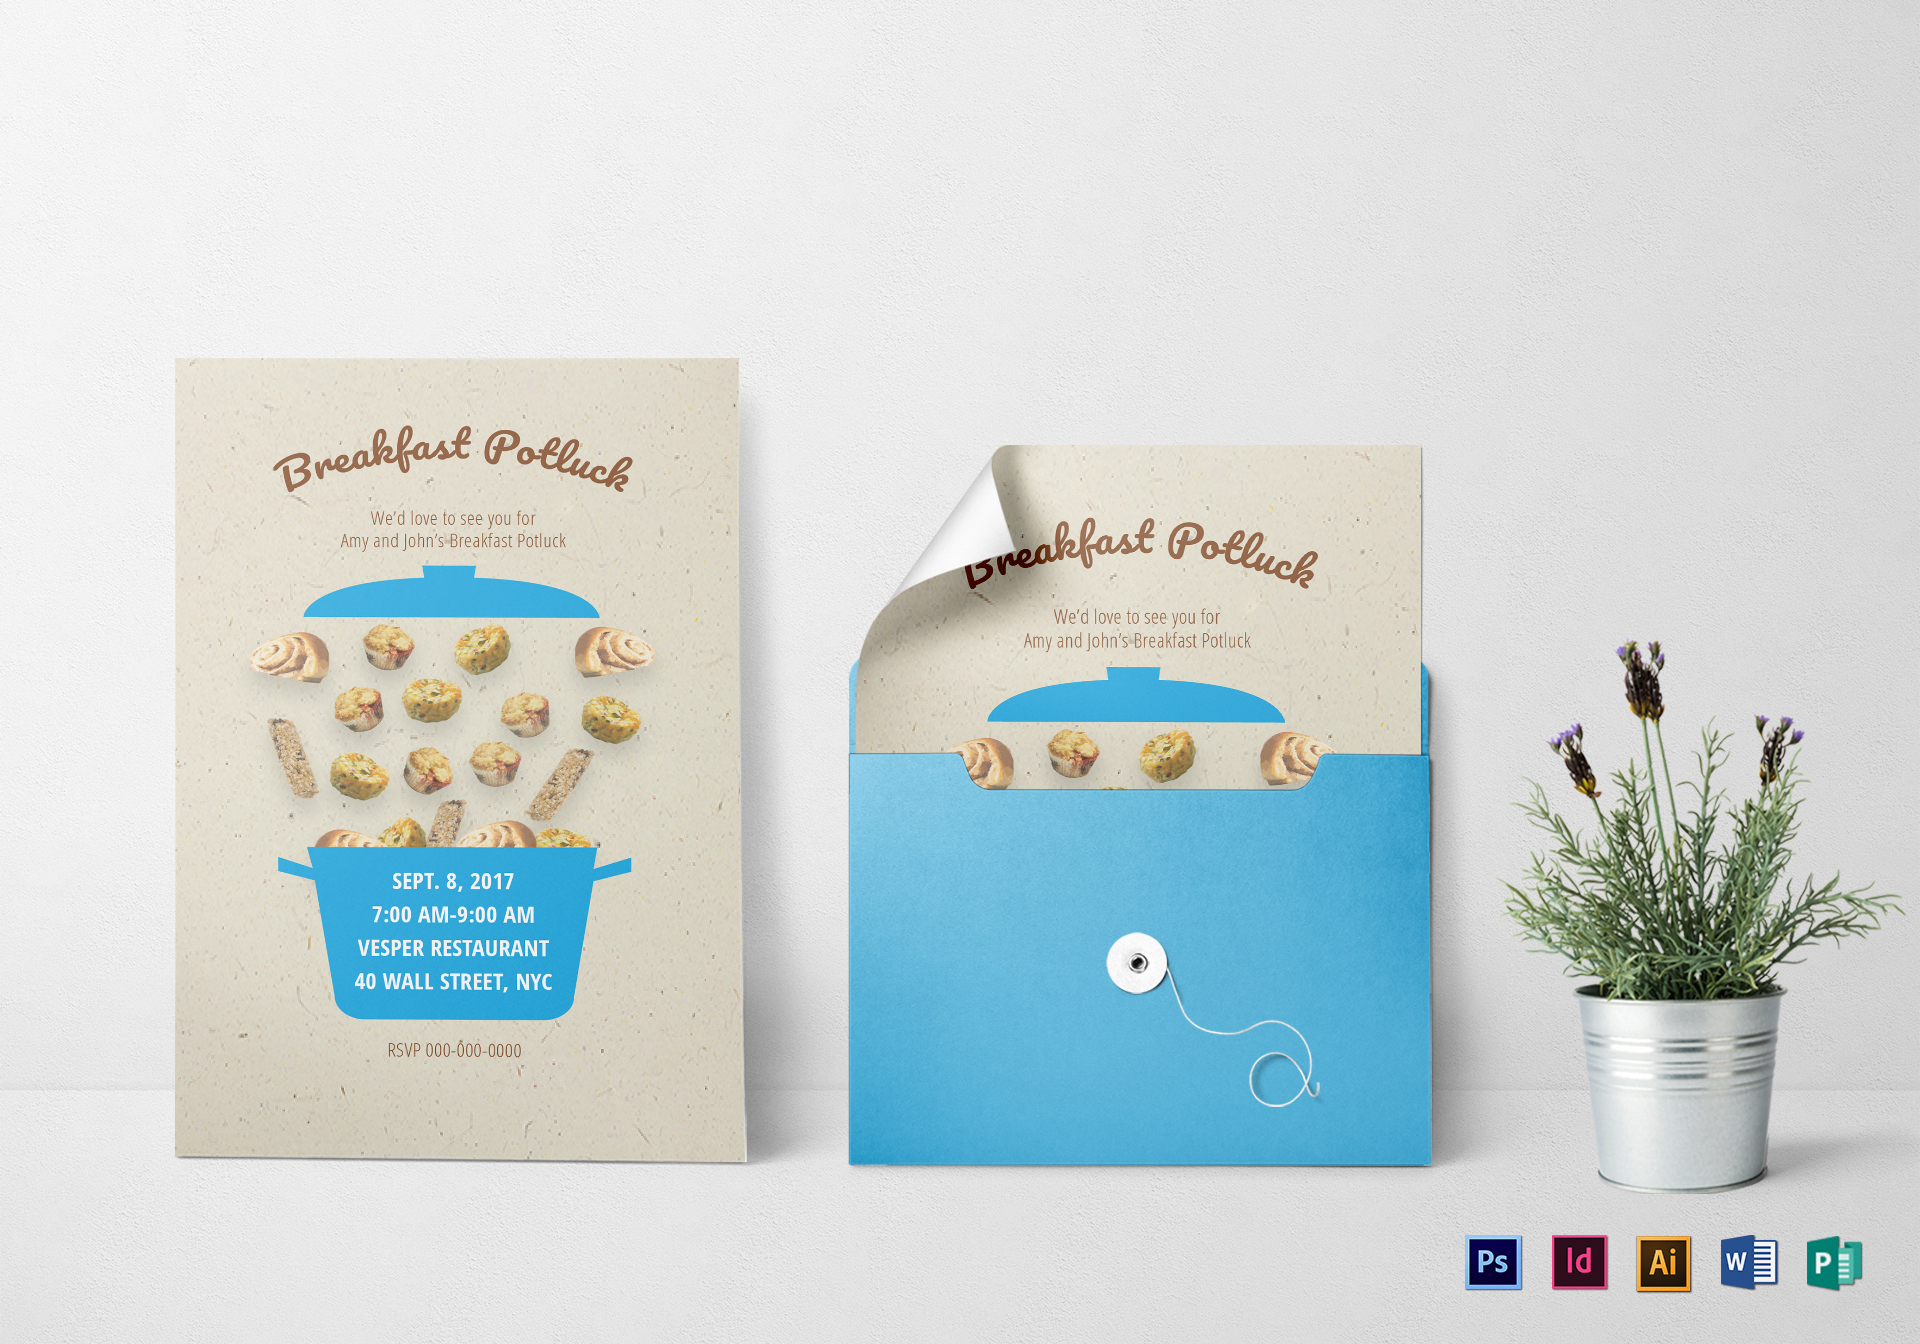 Breakfast Potluck Invitation Template